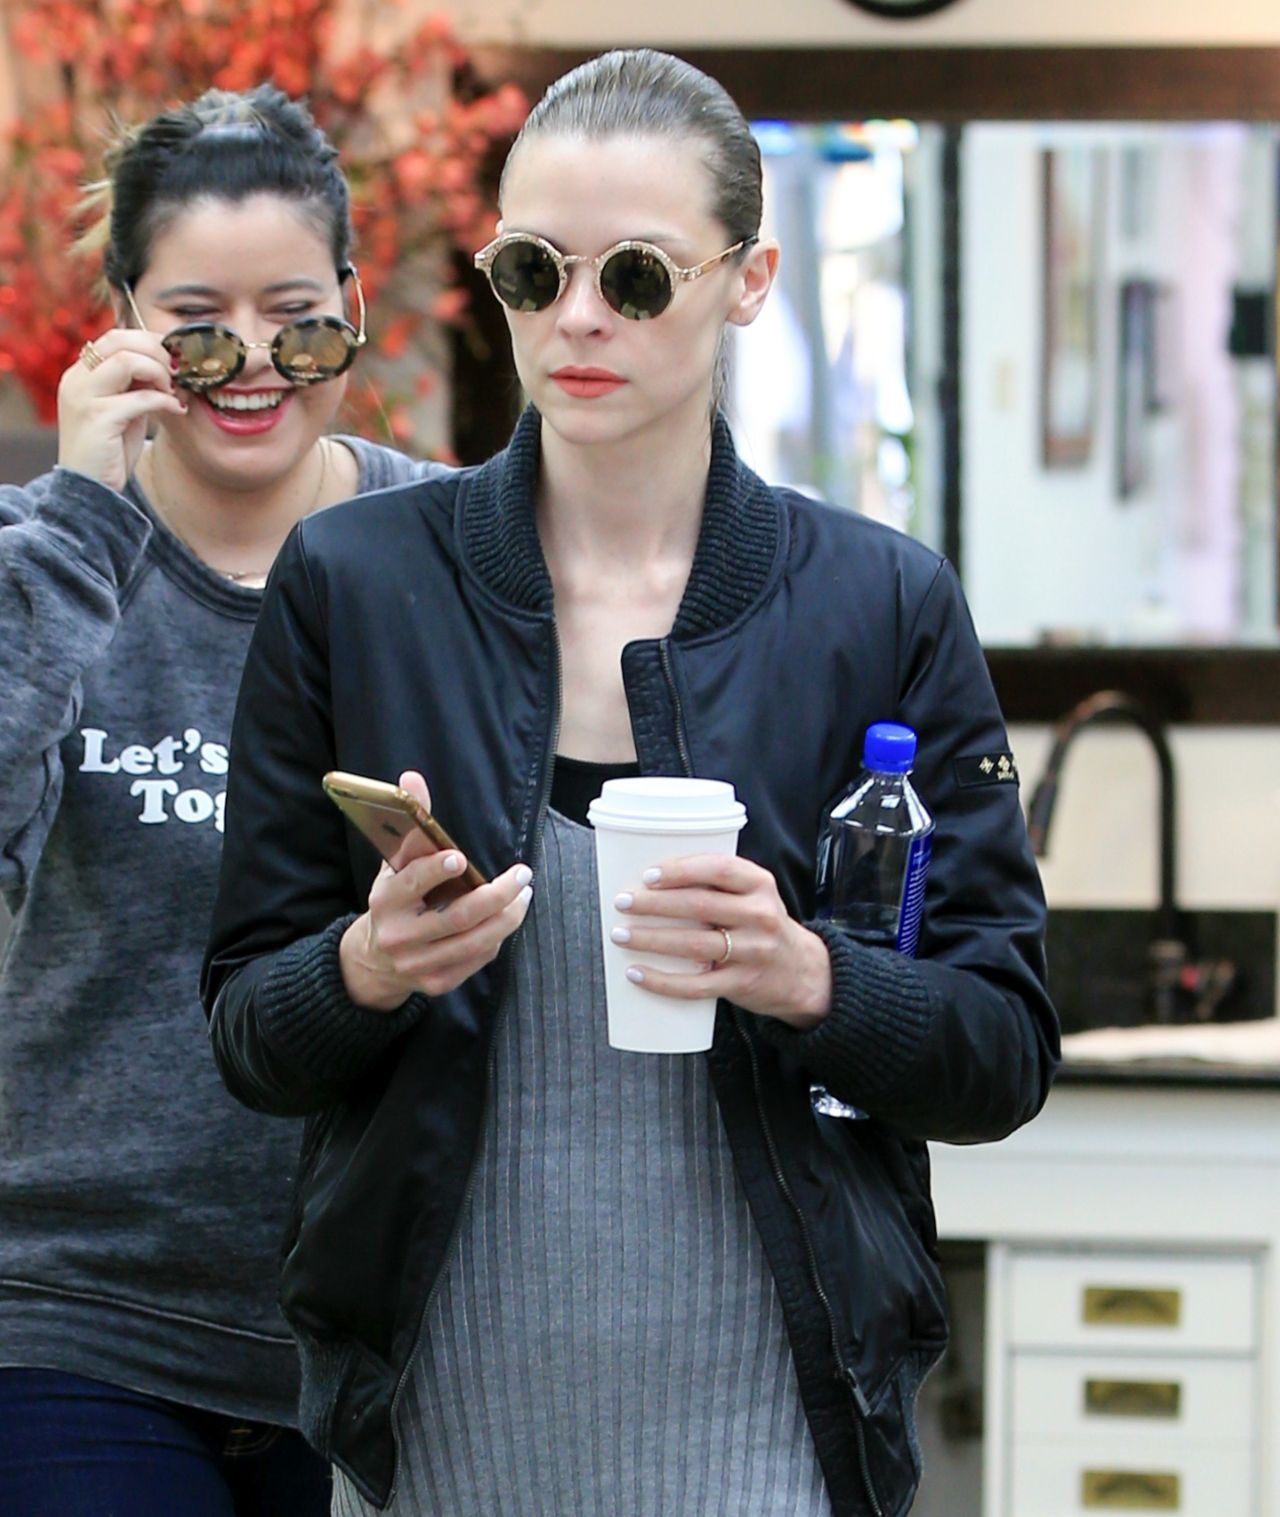 King style out in la 462016 jaime king style out in la 462016 sciox Choice Image